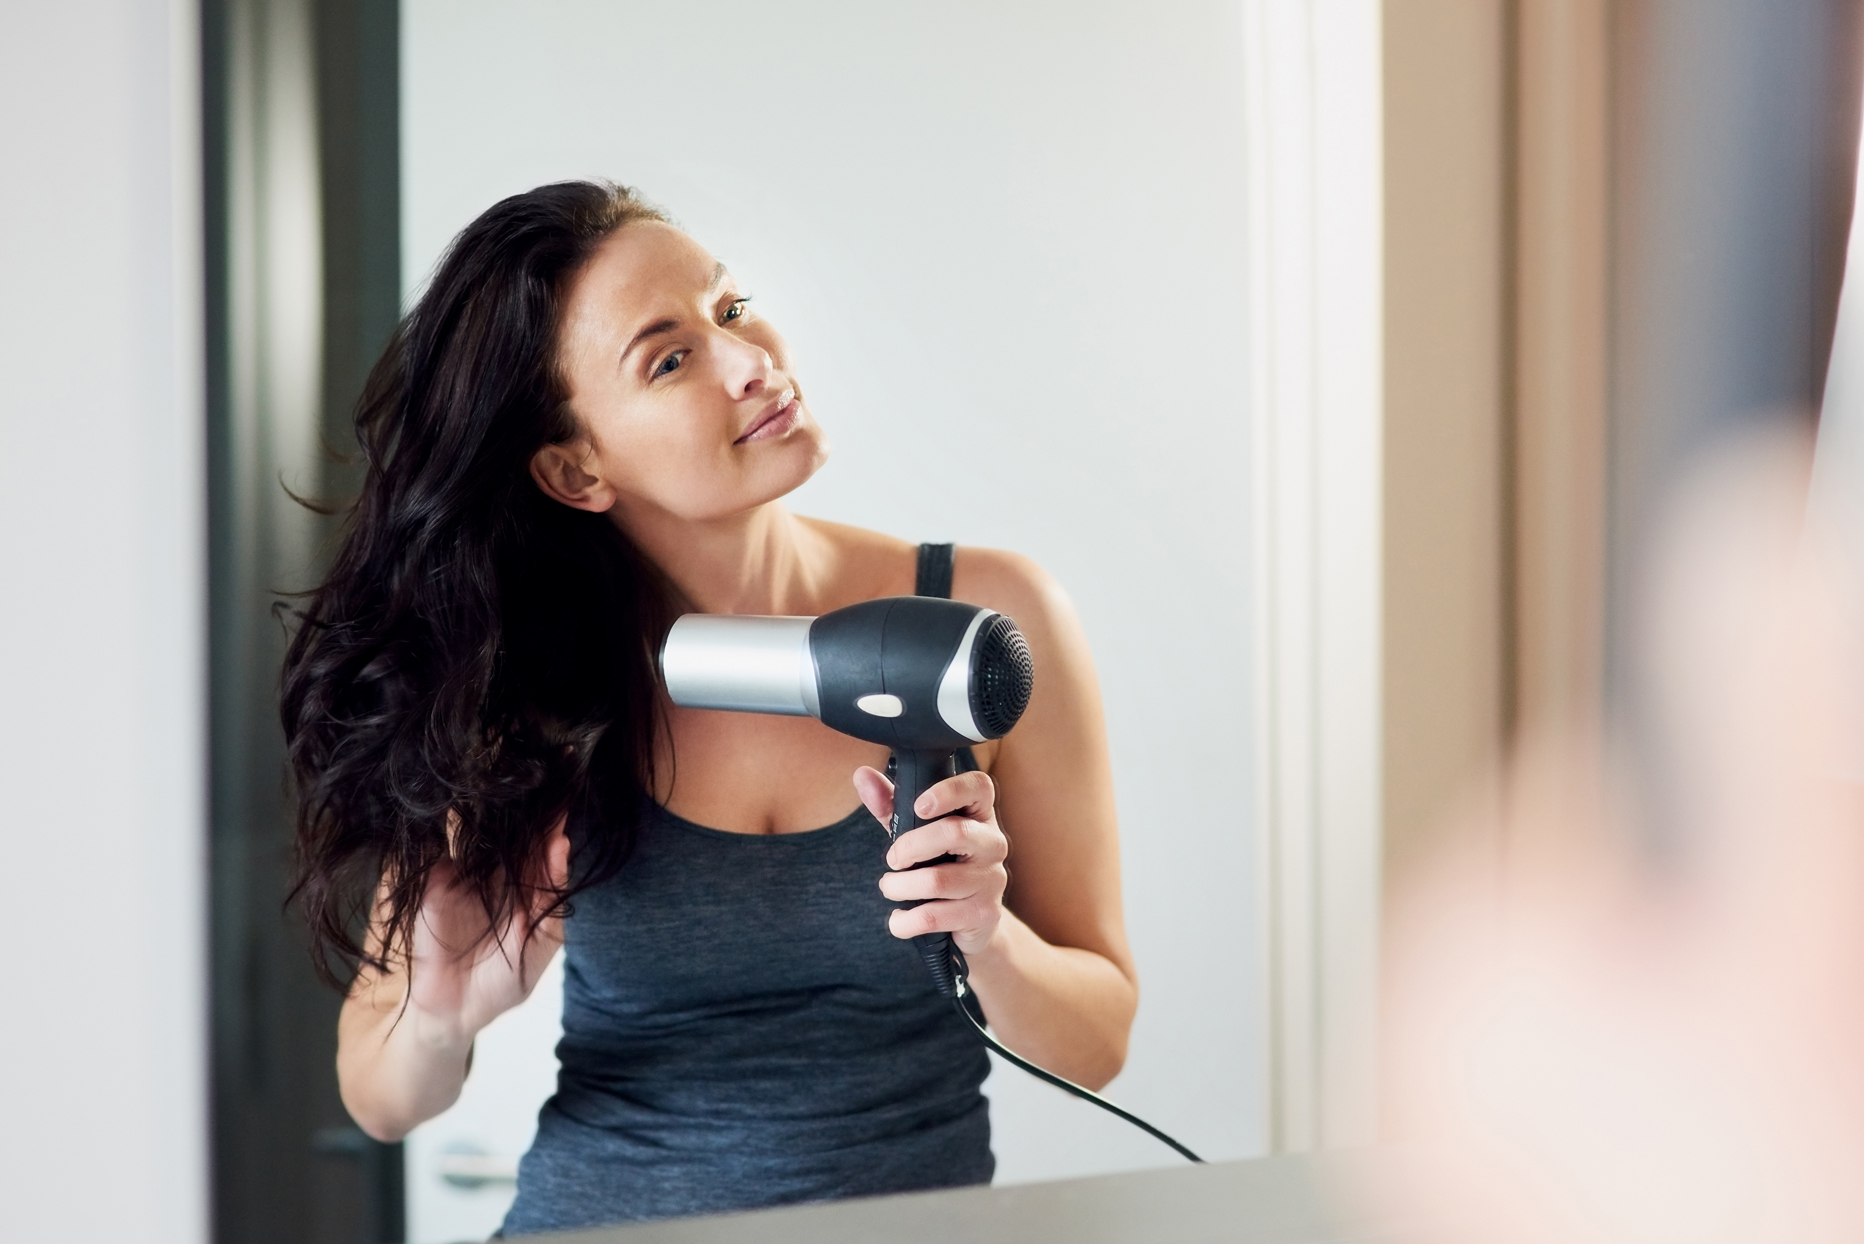 woman blow drying hair in mirror